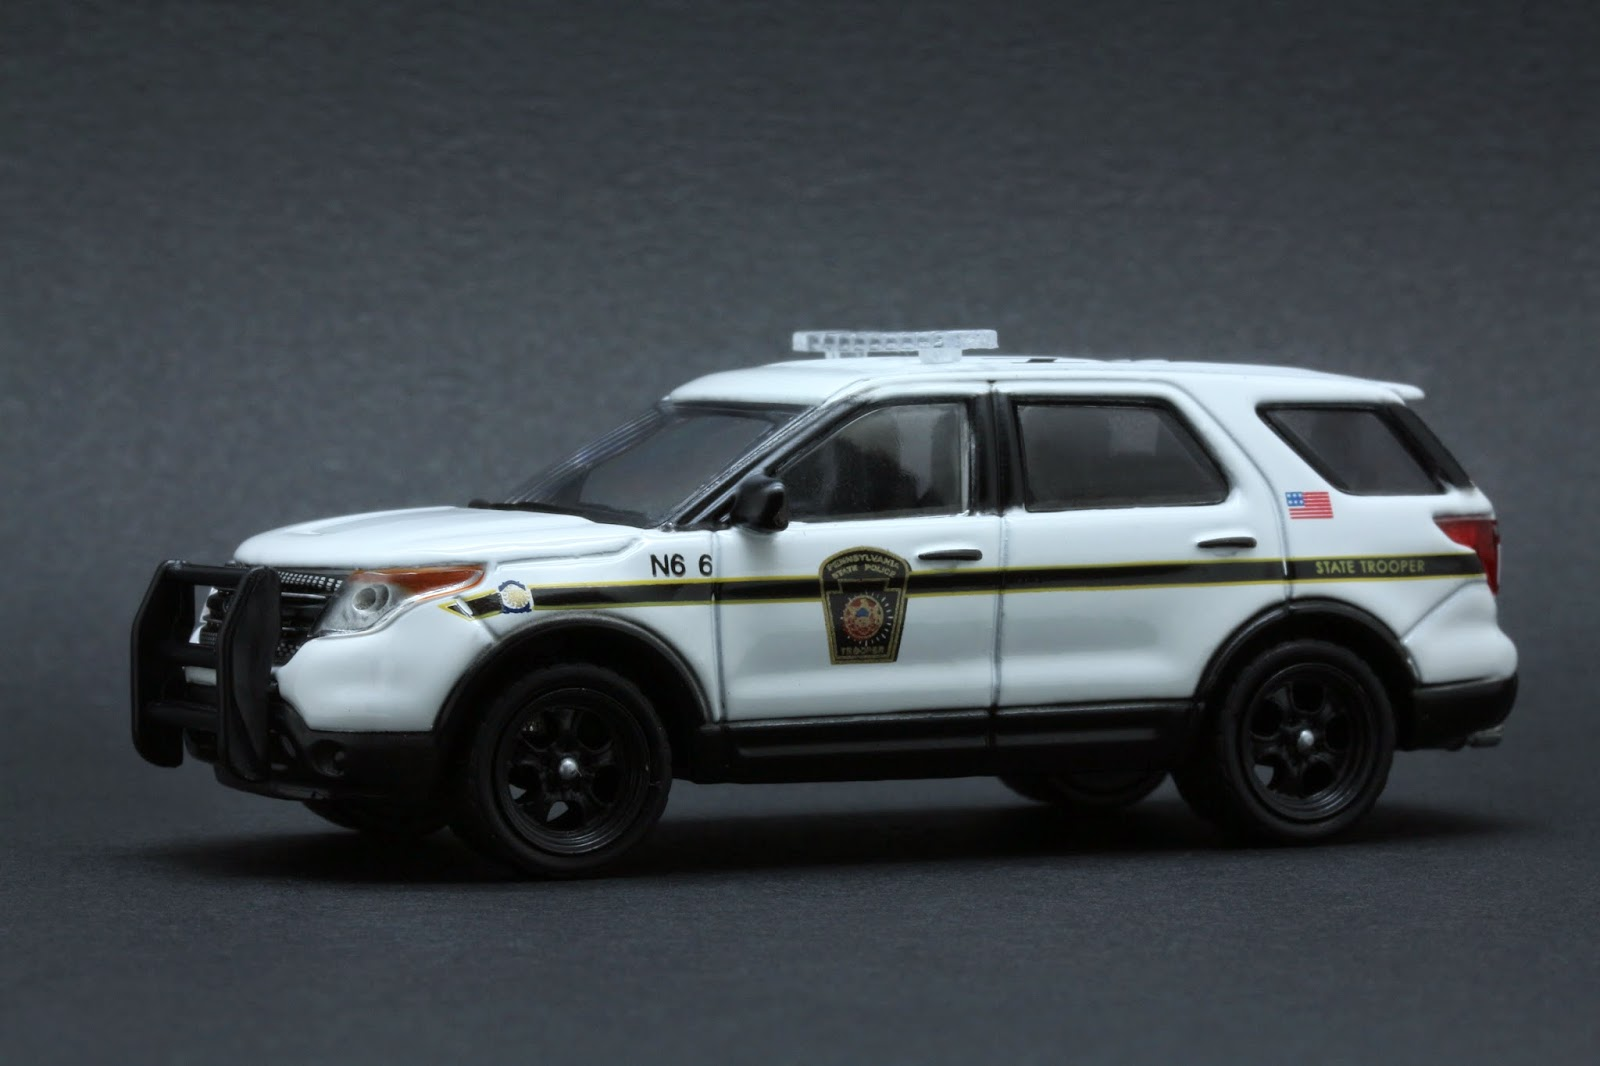 diecast hobbist 2014 ford explorer pennsylvania state police. Black Bedroom Furniture Sets. Home Design Ideas